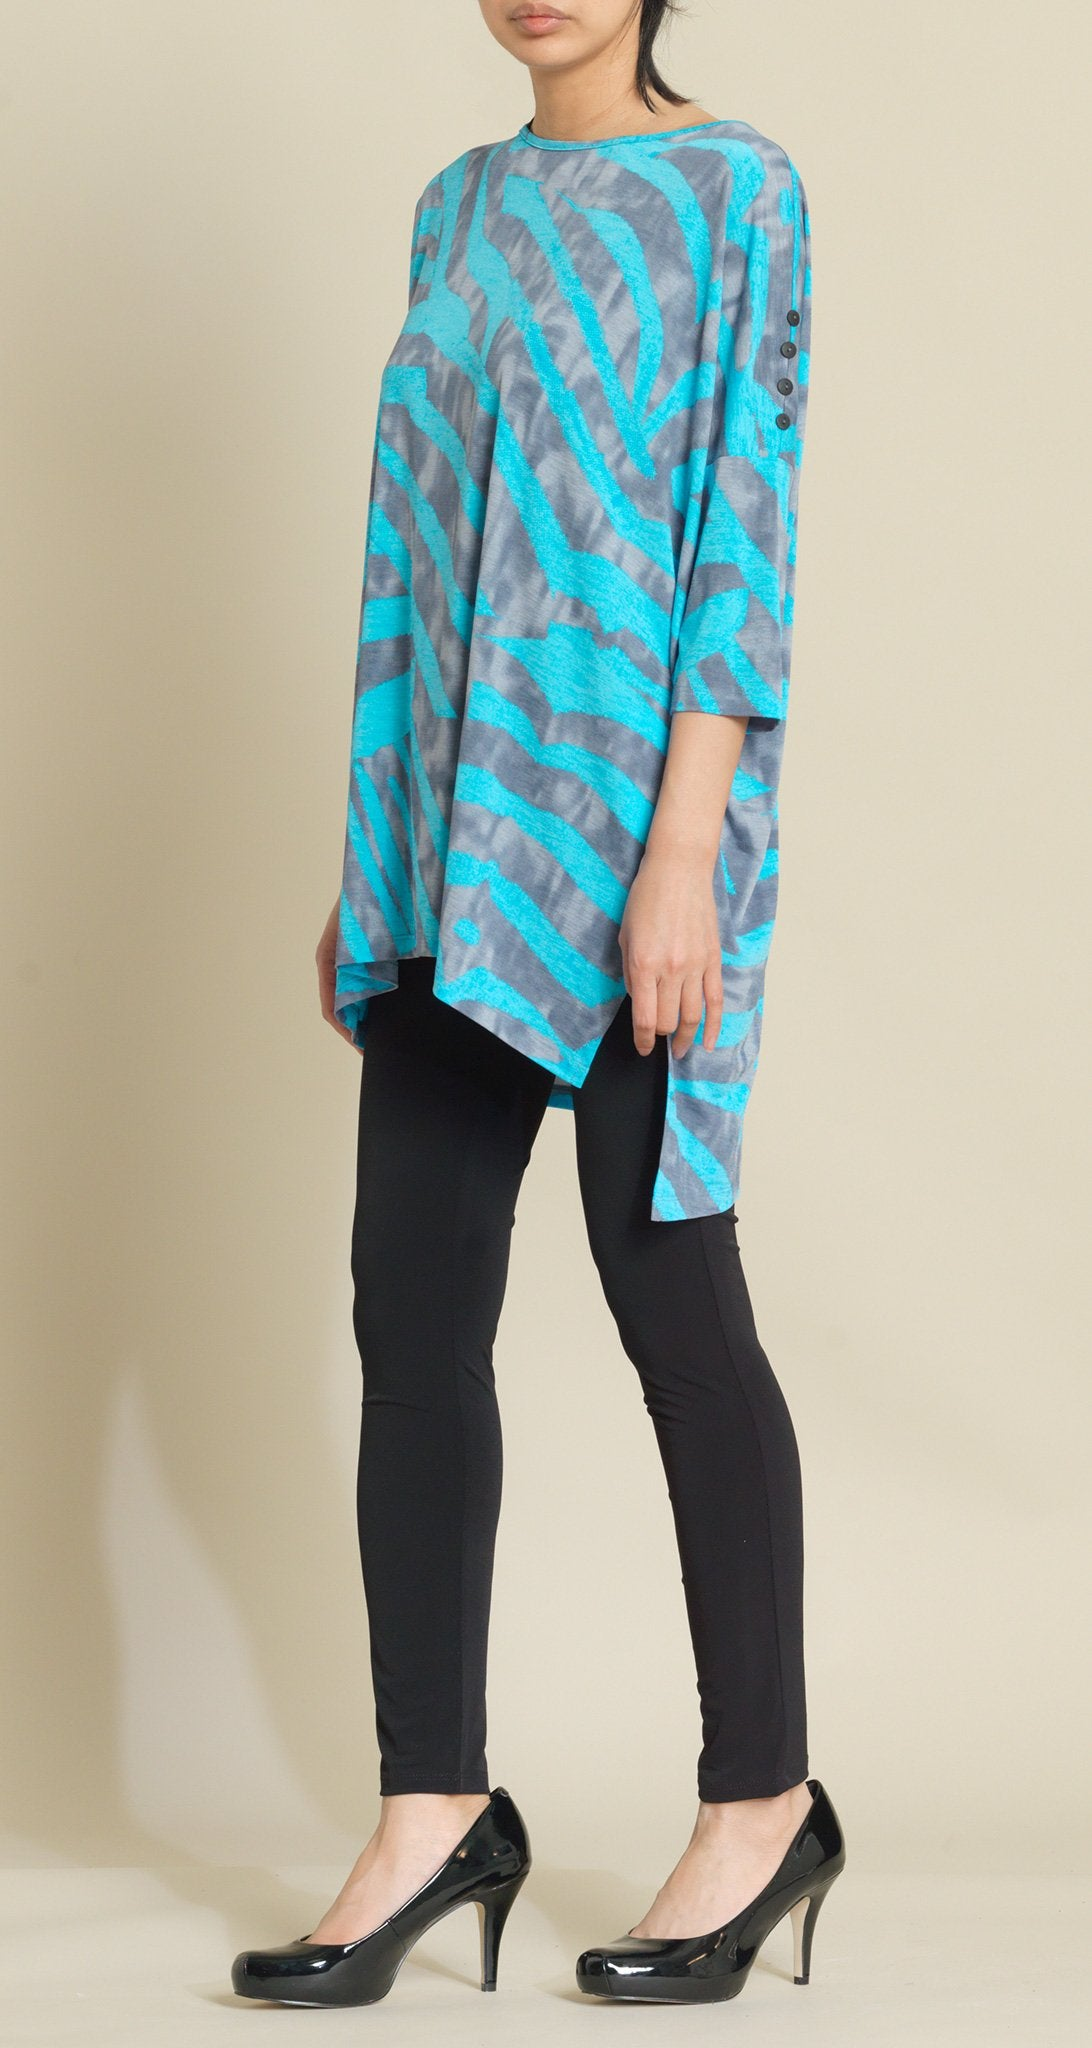 Zebra Stripe Hi-Low Tunic - Tuquoise - Final Sale! - Clara Sunwoo